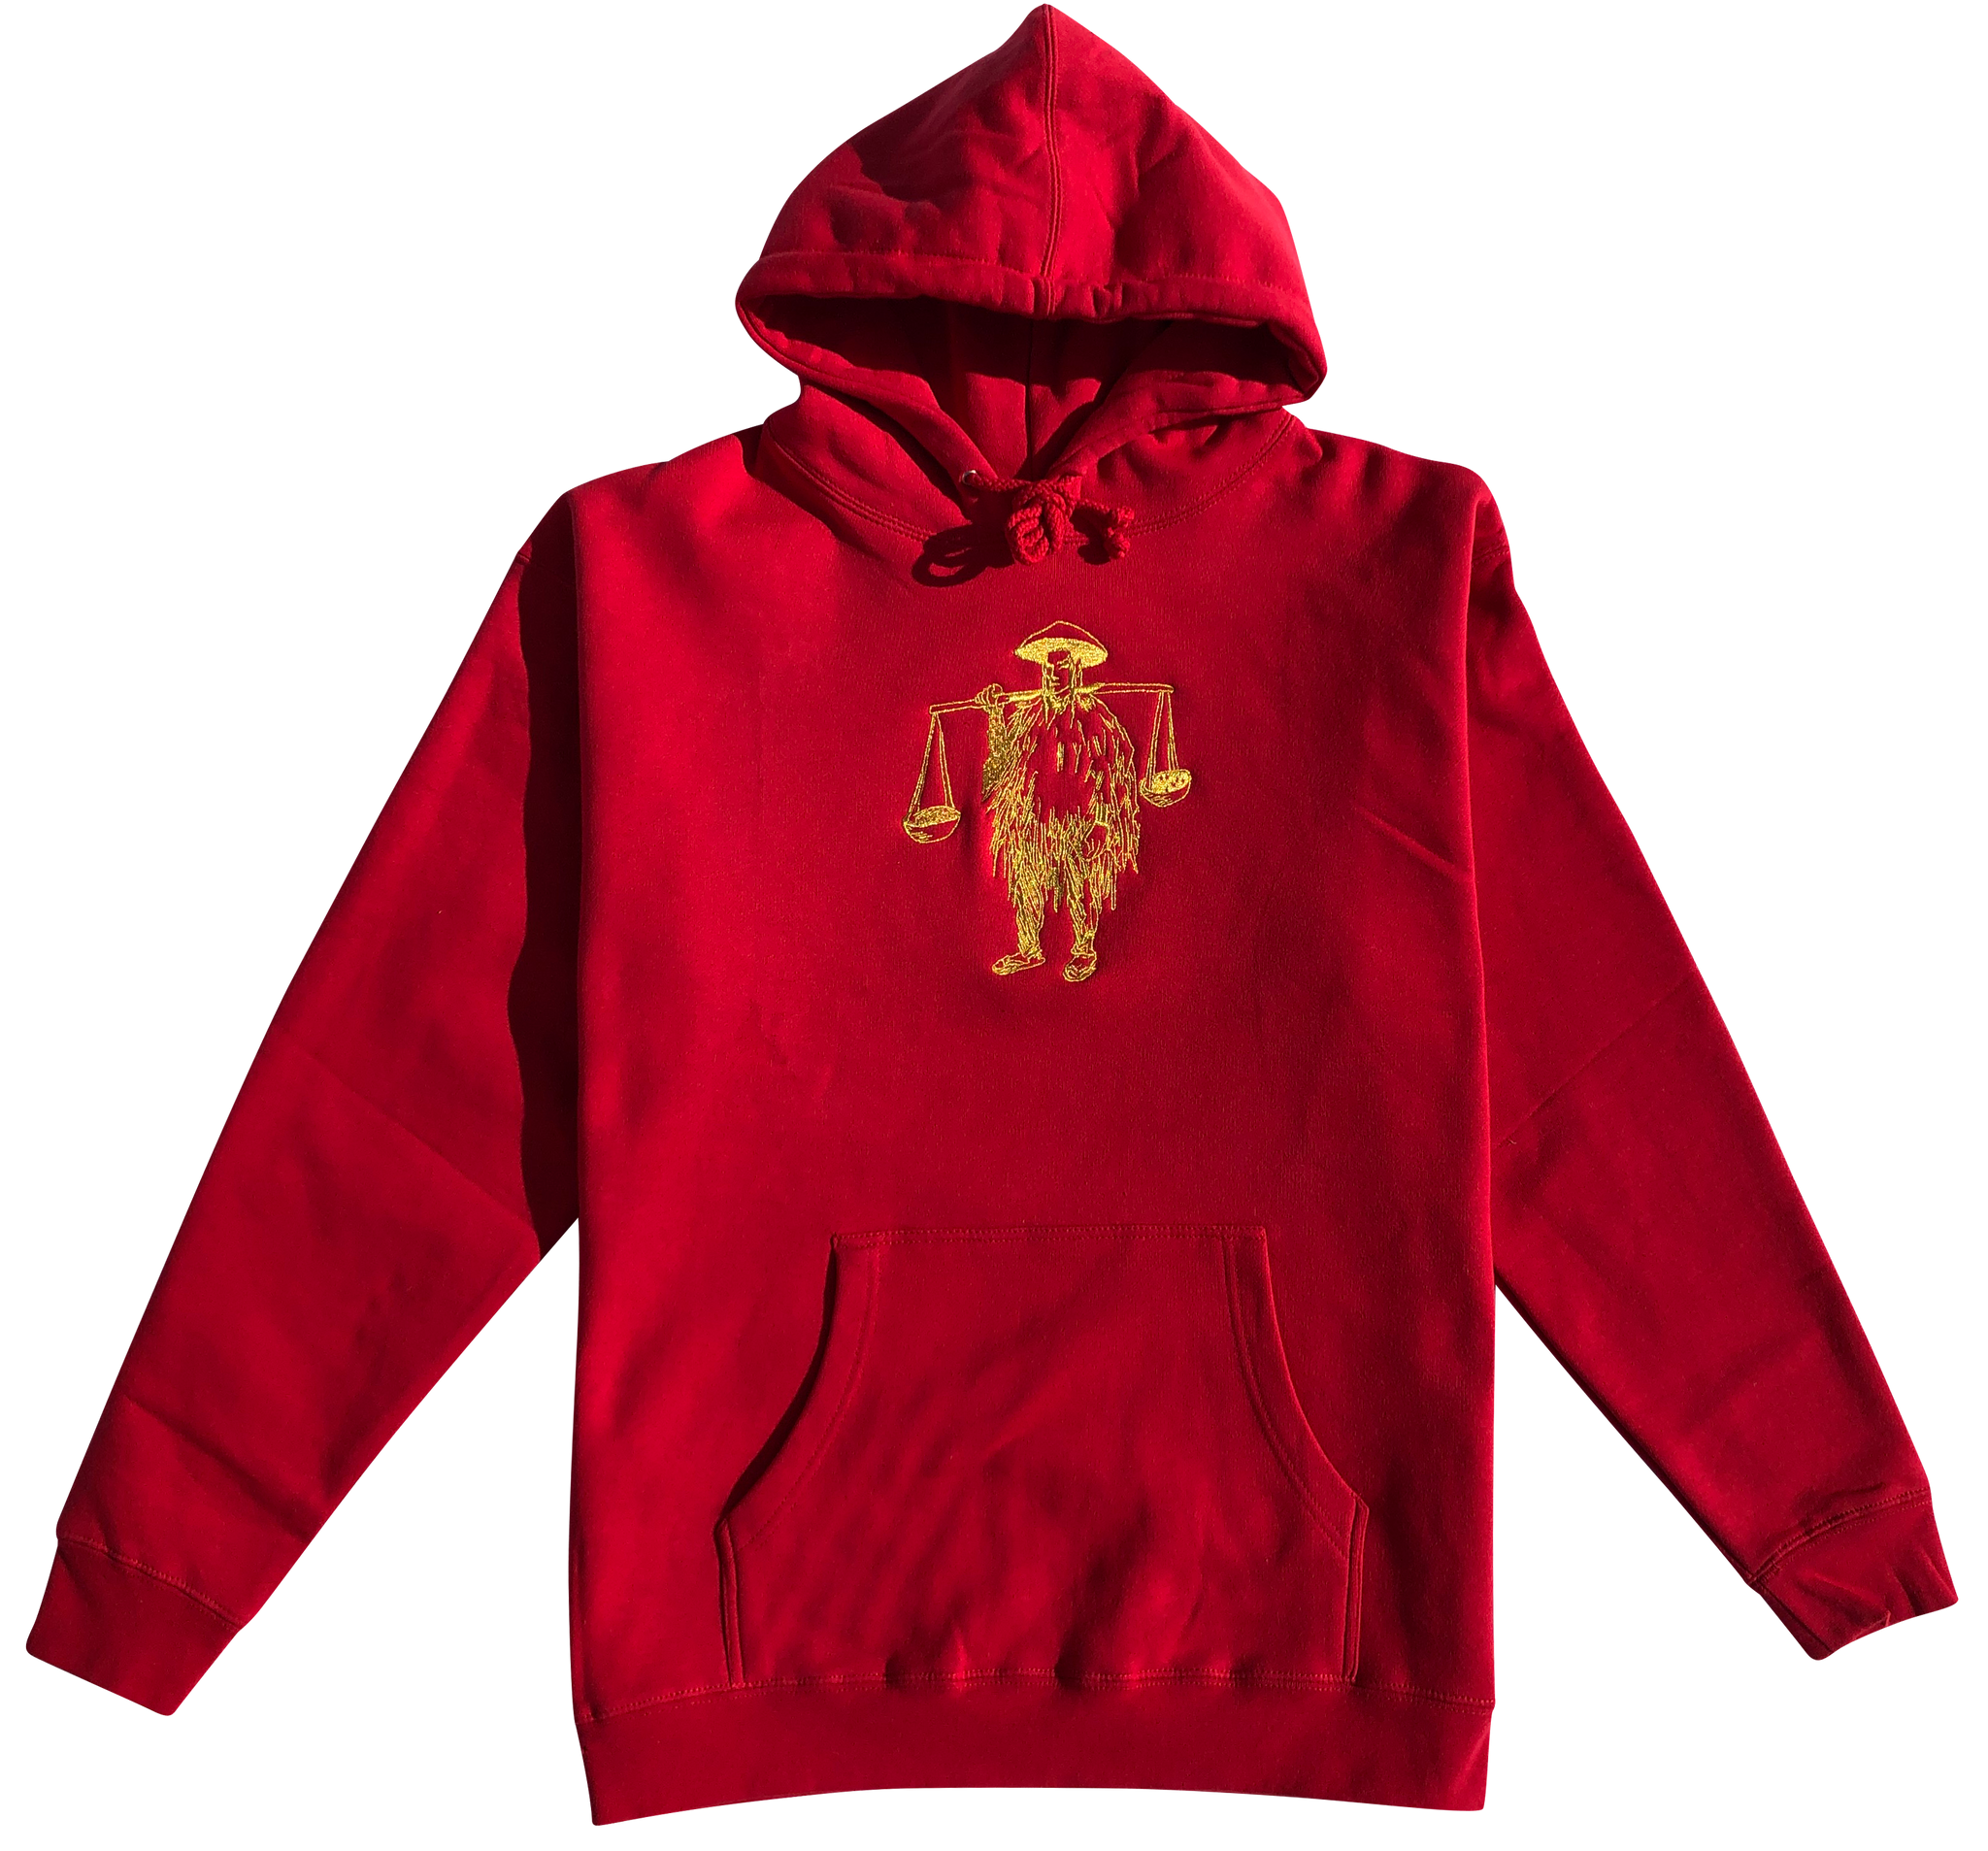 Shotta Man Embroidered Hoodie (Red) - Shotta Spence